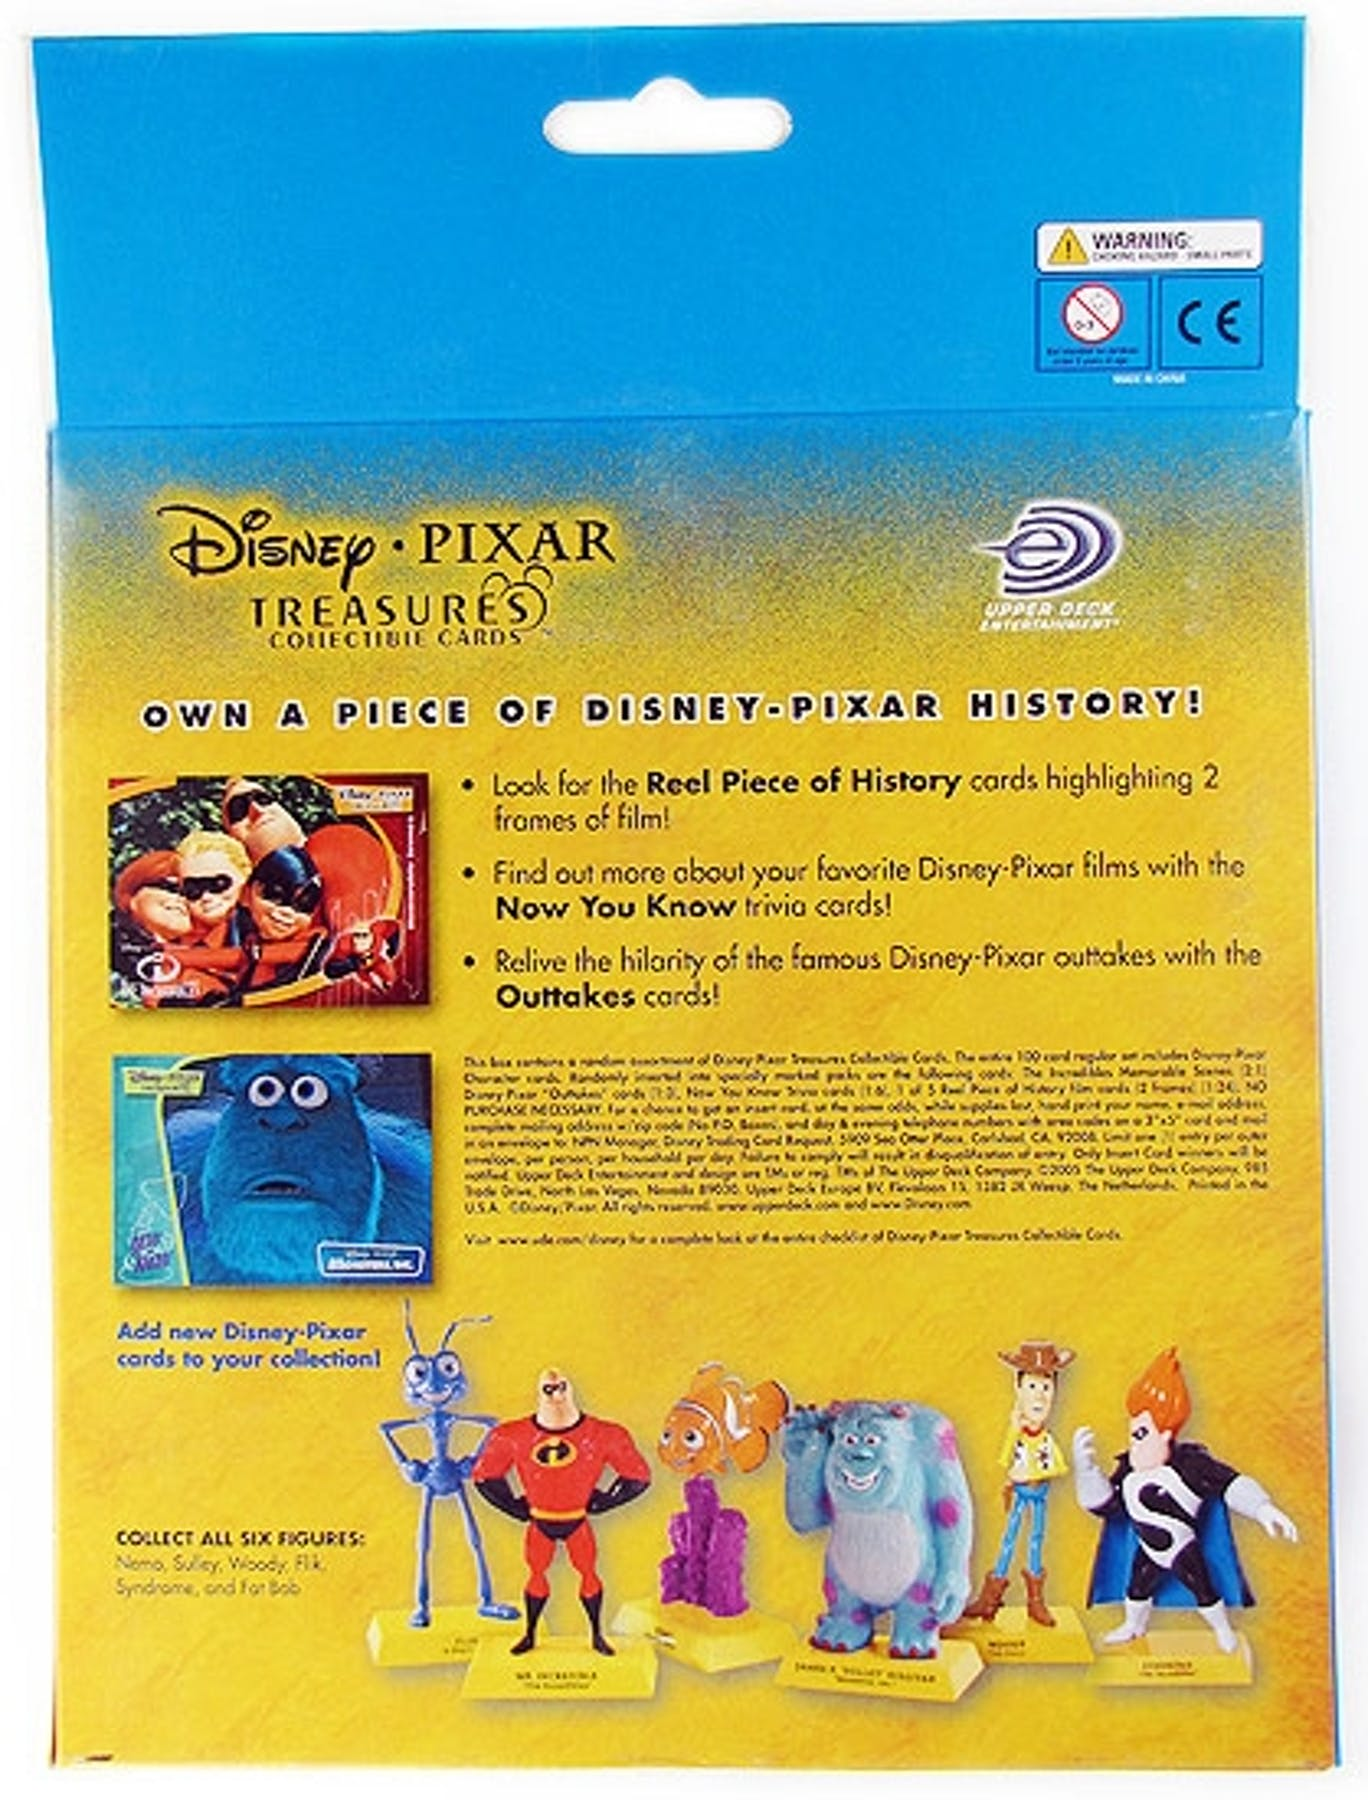 Disney Pixar Treasures Trading Cards Box With Syndrome